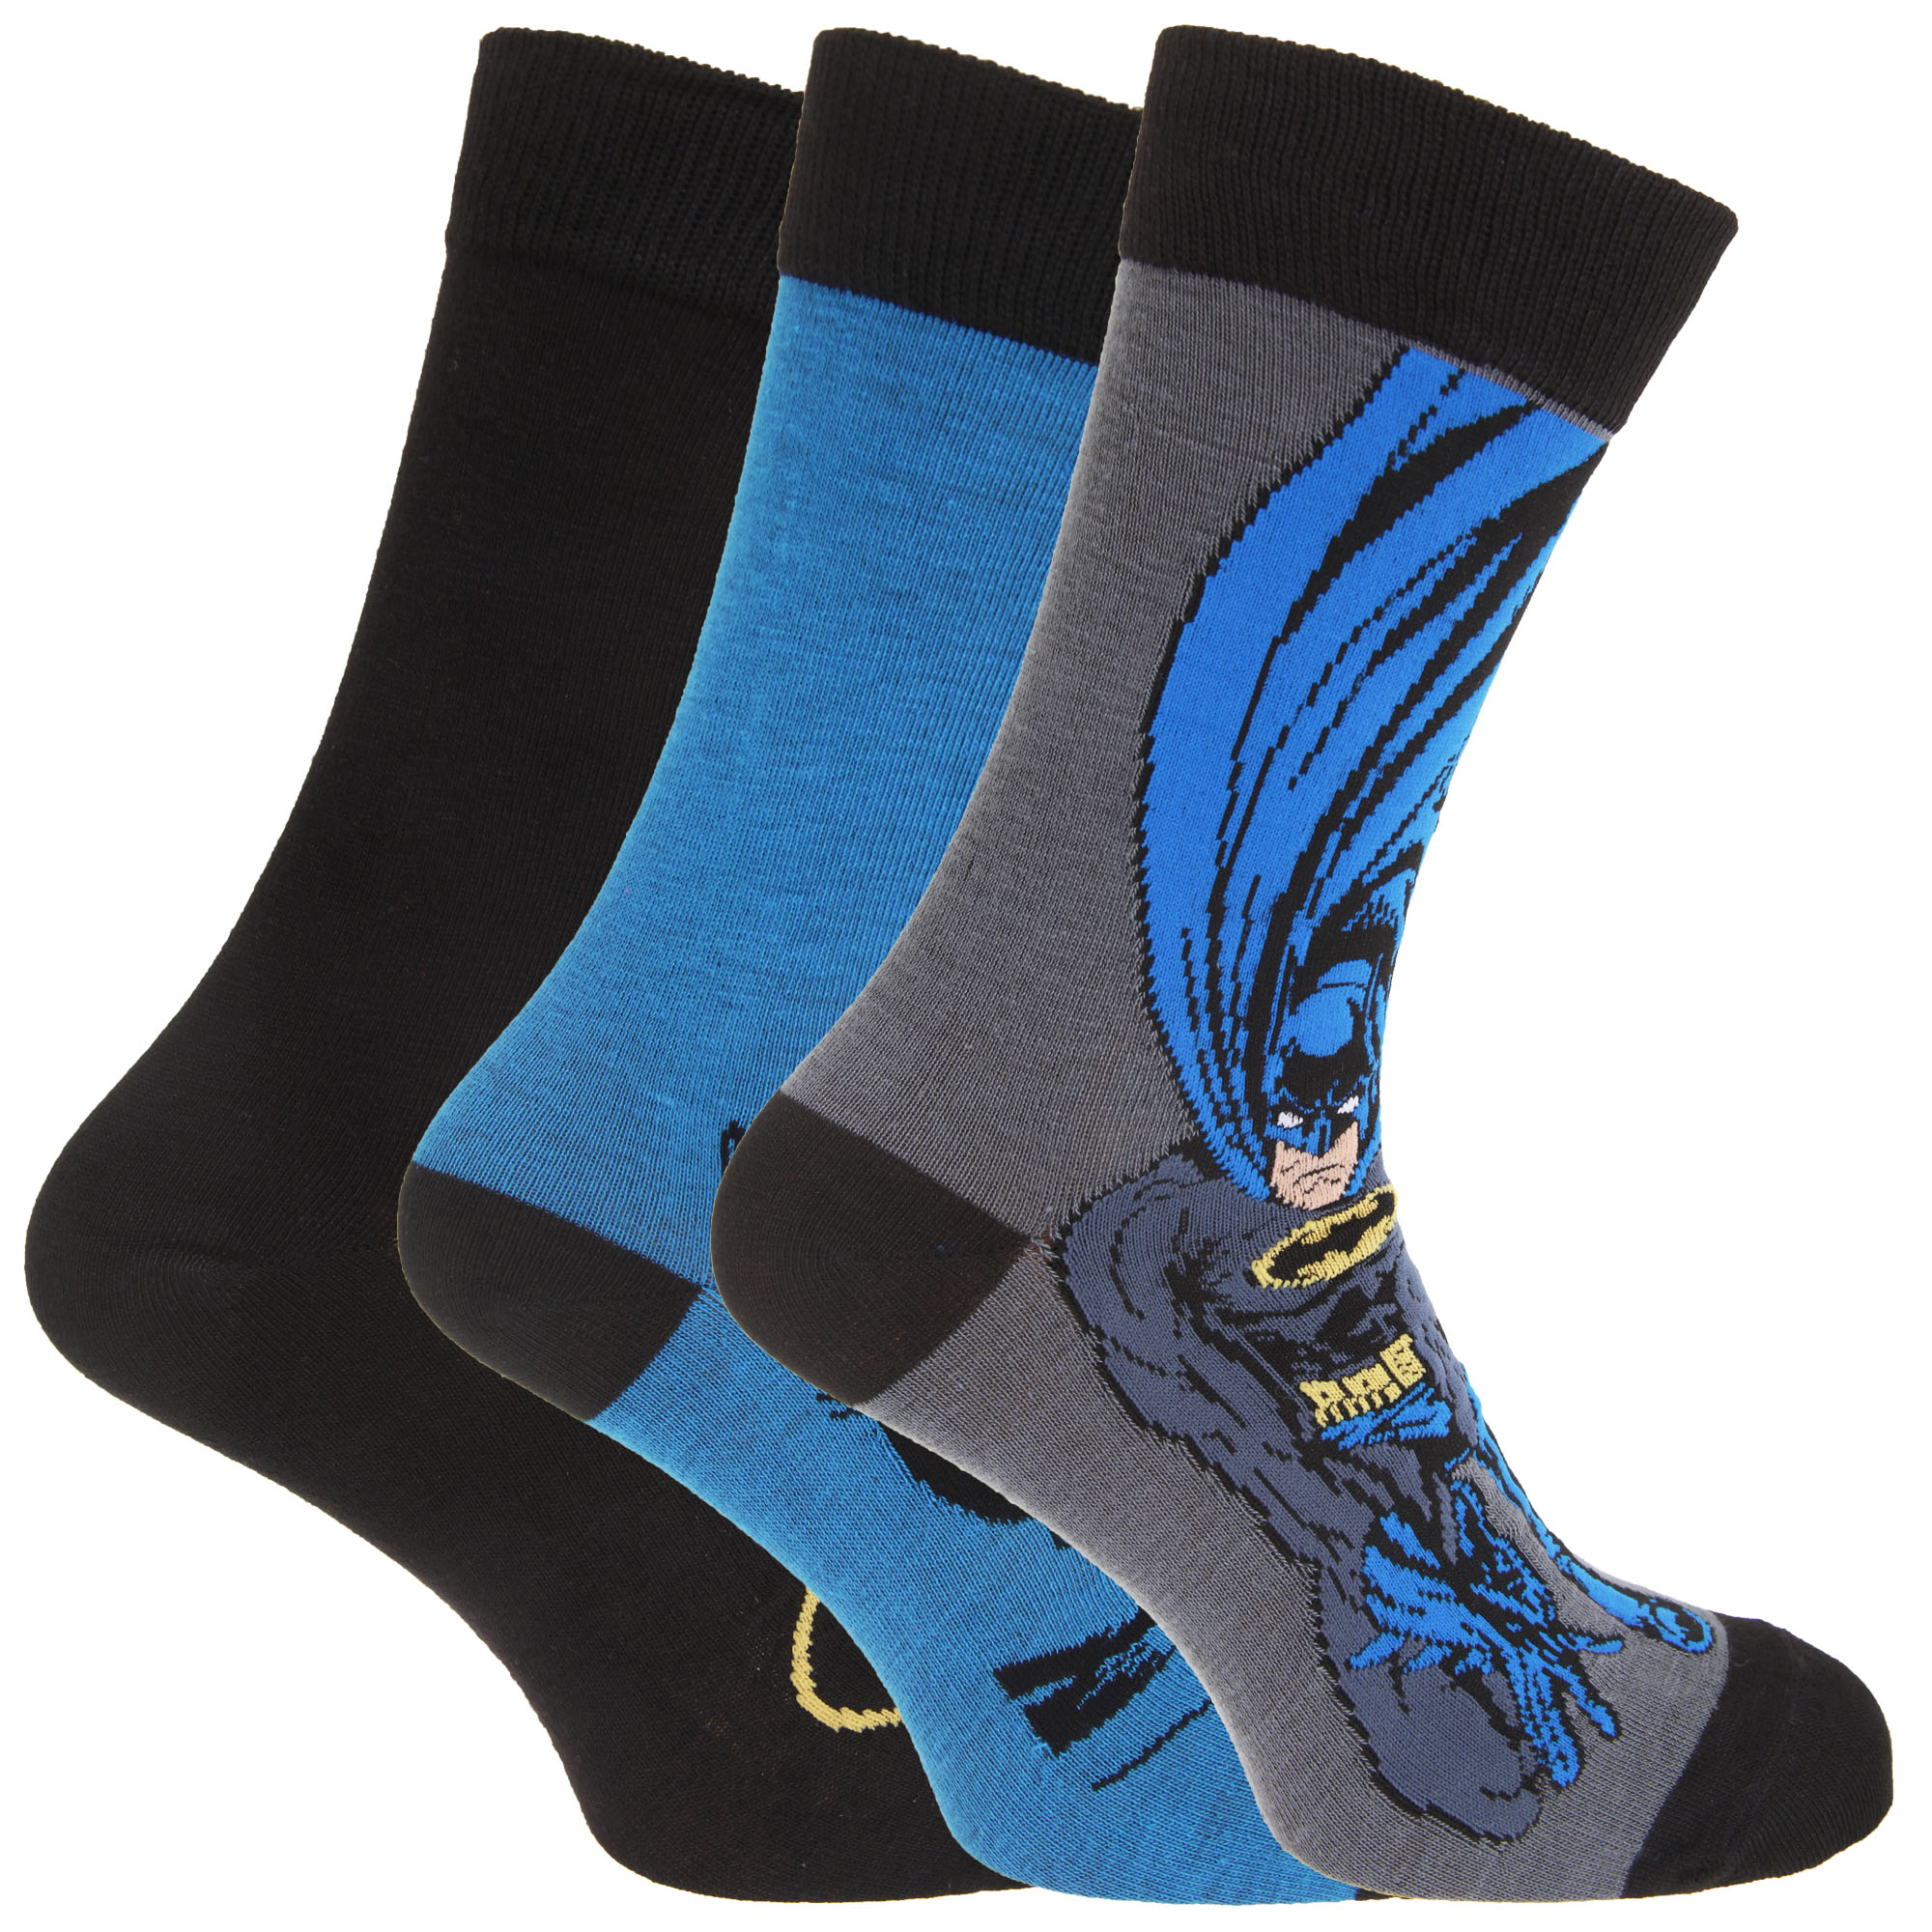 batman boys socks dc comics sleepwear children ankle sock dark knight size see more like this NEW.. Set of 2 Kids Boys Superman Batman Hero Socks fits years.